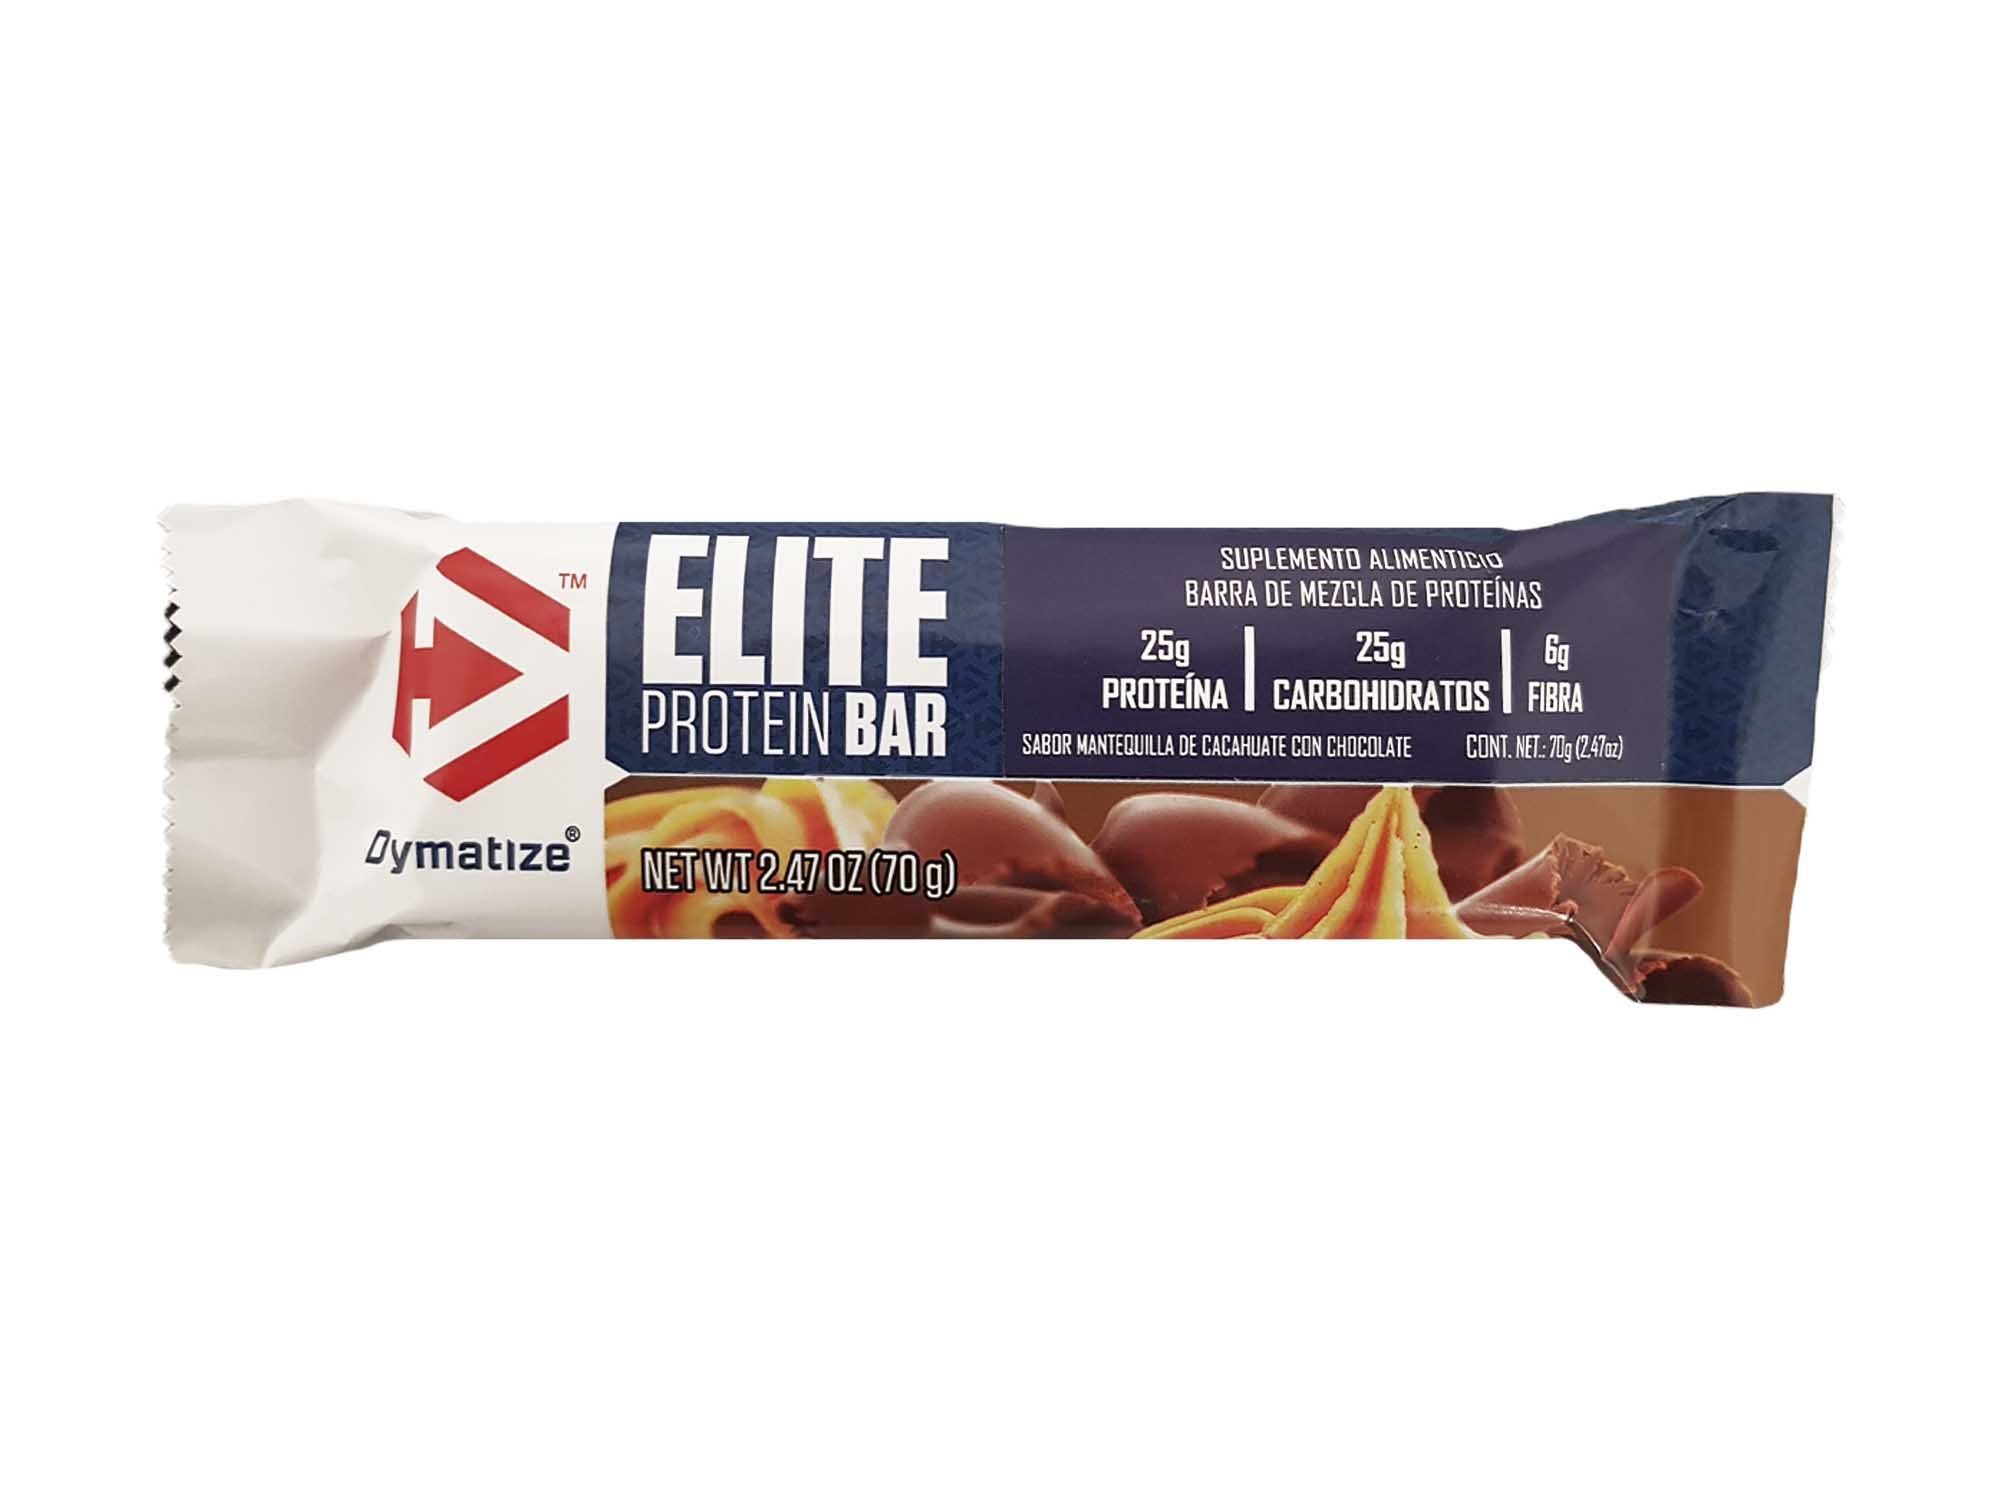 Dymatize Elite Protein Bar, Peanut Butter Chocolate, 2.47 Ounce (Pack of 12)